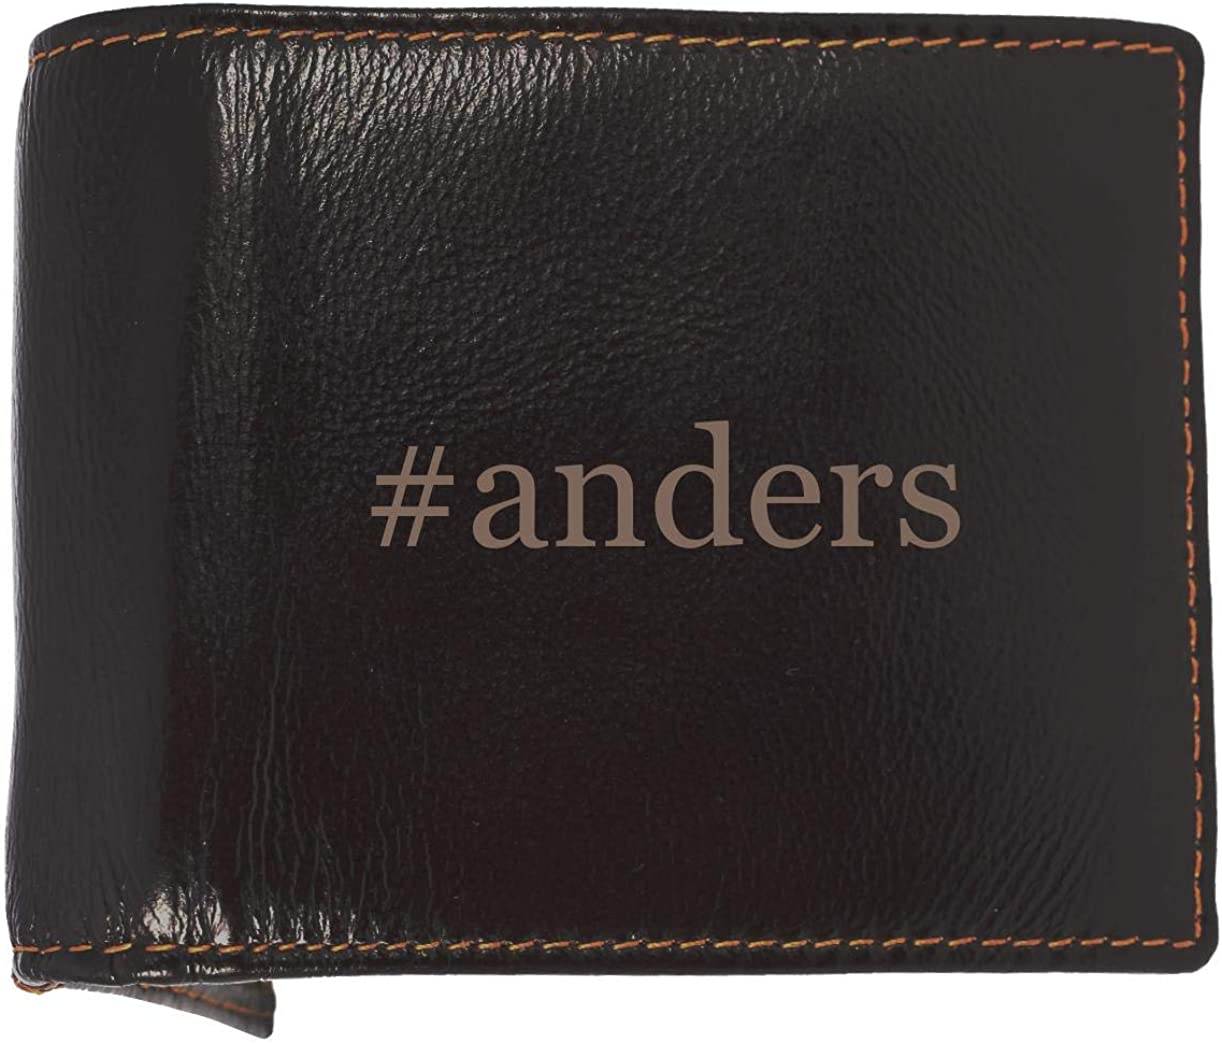 #anders - Soft Hashtag Cowhide Genuine Engraved Bifold Leather Wallet